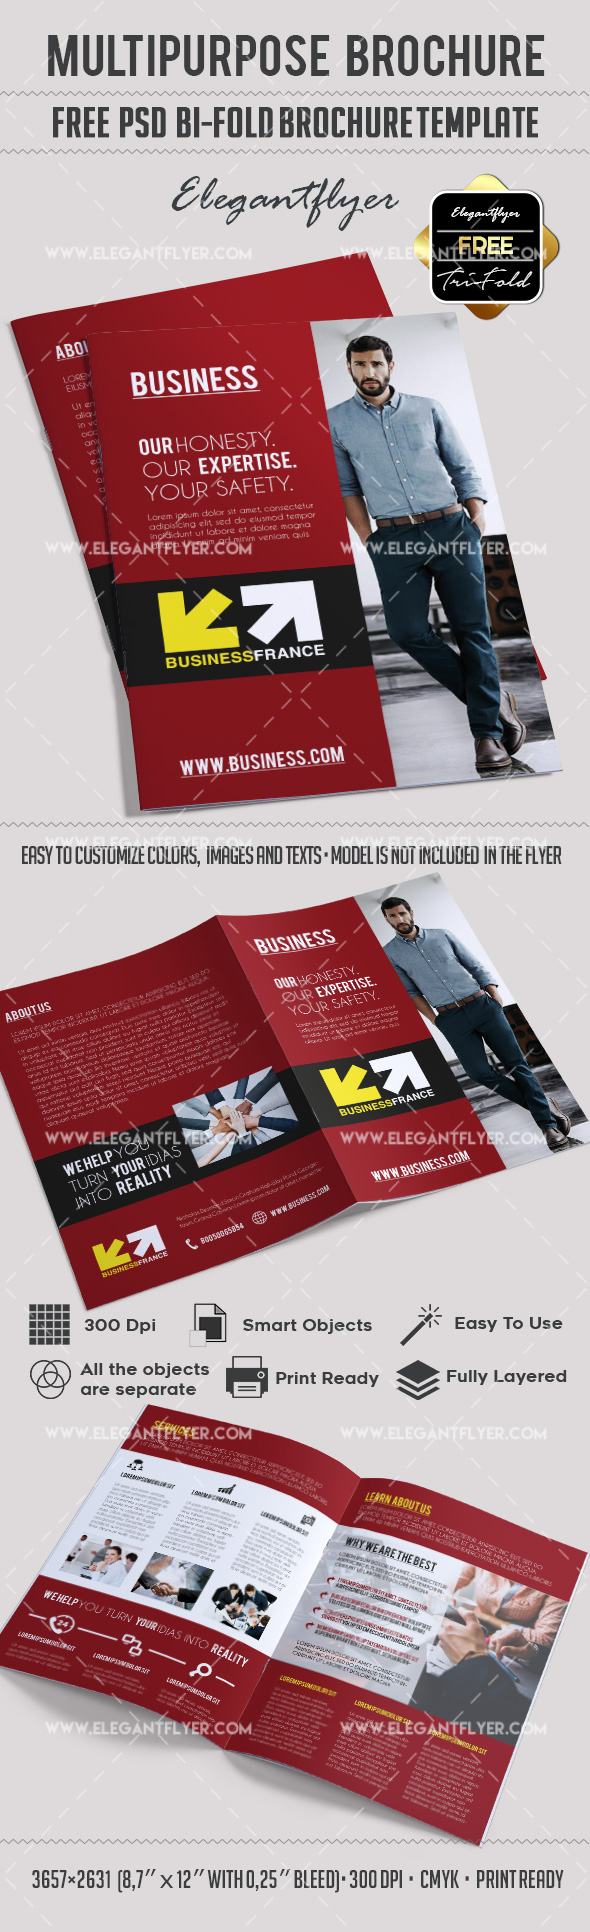 Free multipurpose brochure in psd by elegantflyer for Free bi fold brochure template 2